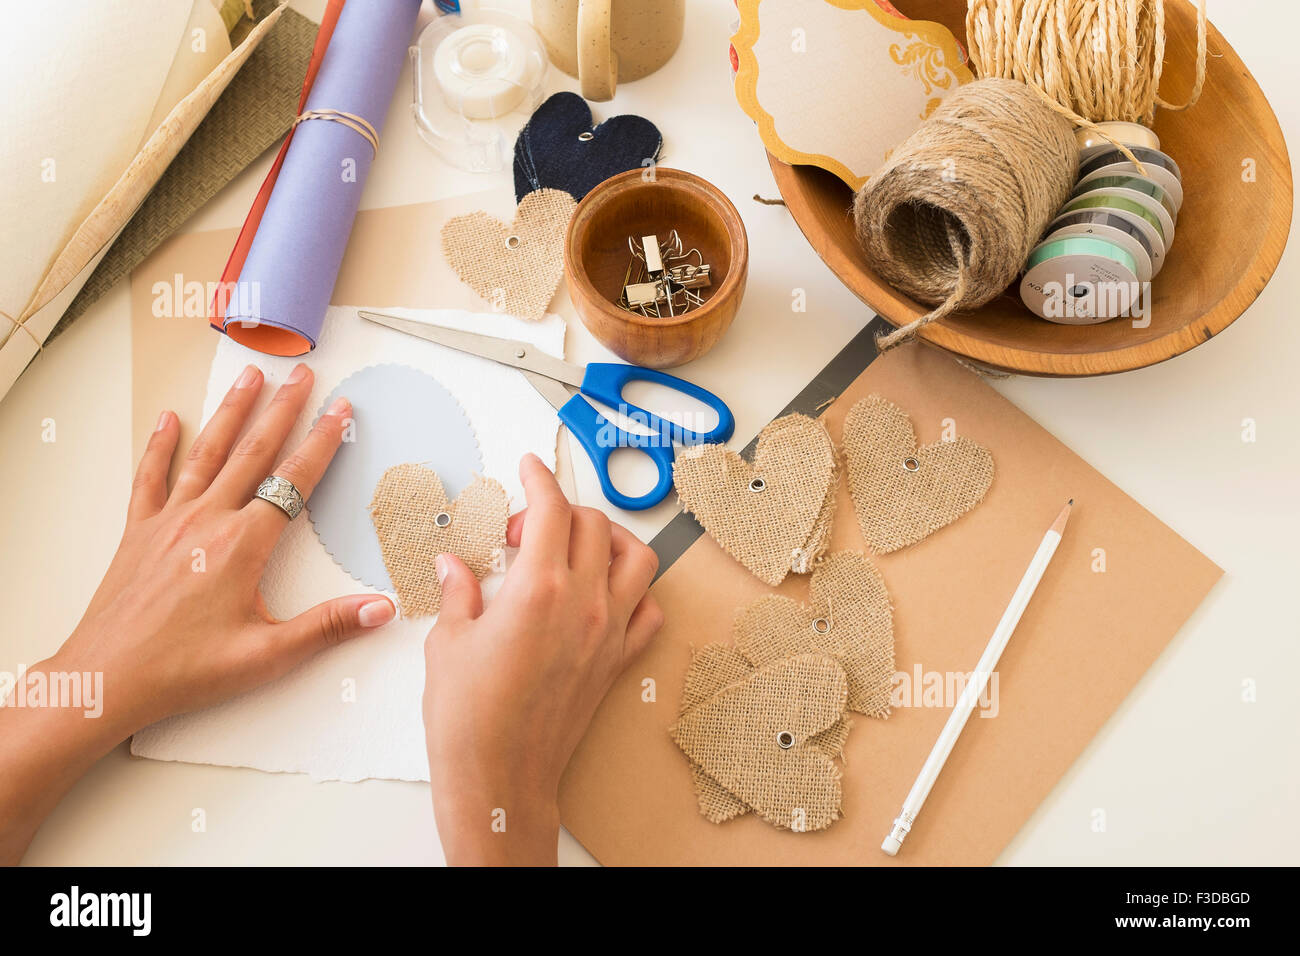 Crafts equipment on table - Stock Image